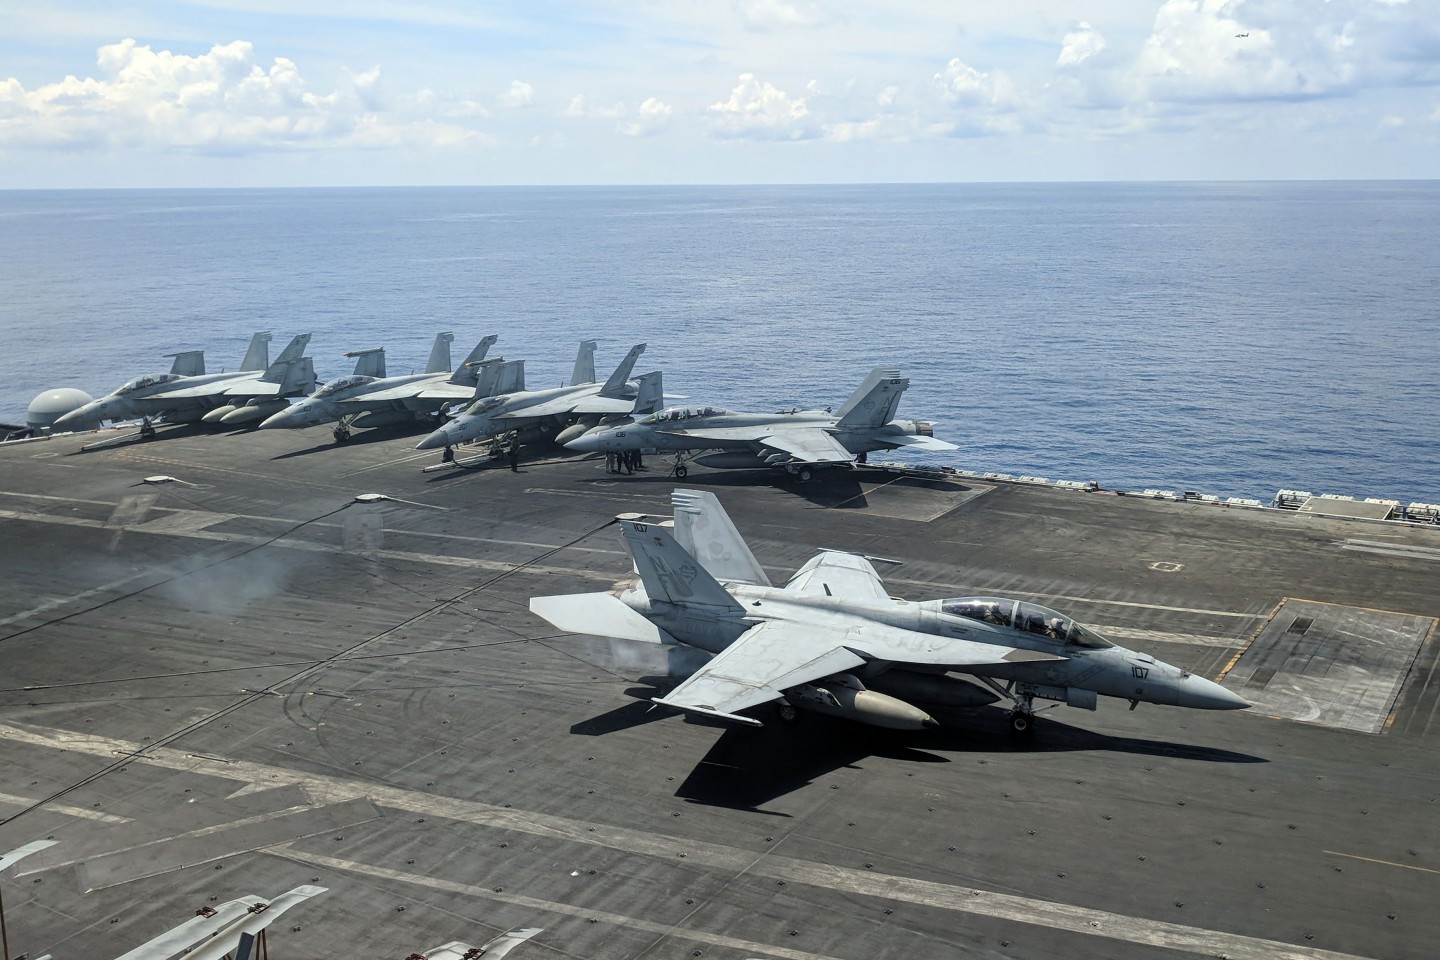 This photograph taken on October 16, 2019 shows a US Navy F/A-18 Super Hornets multirole fighter landing on the flight deck of USS Ronald Reagan (CVN-76) aircraft carrier as it sails in South China Sea. (Catherine Lai/AFP)